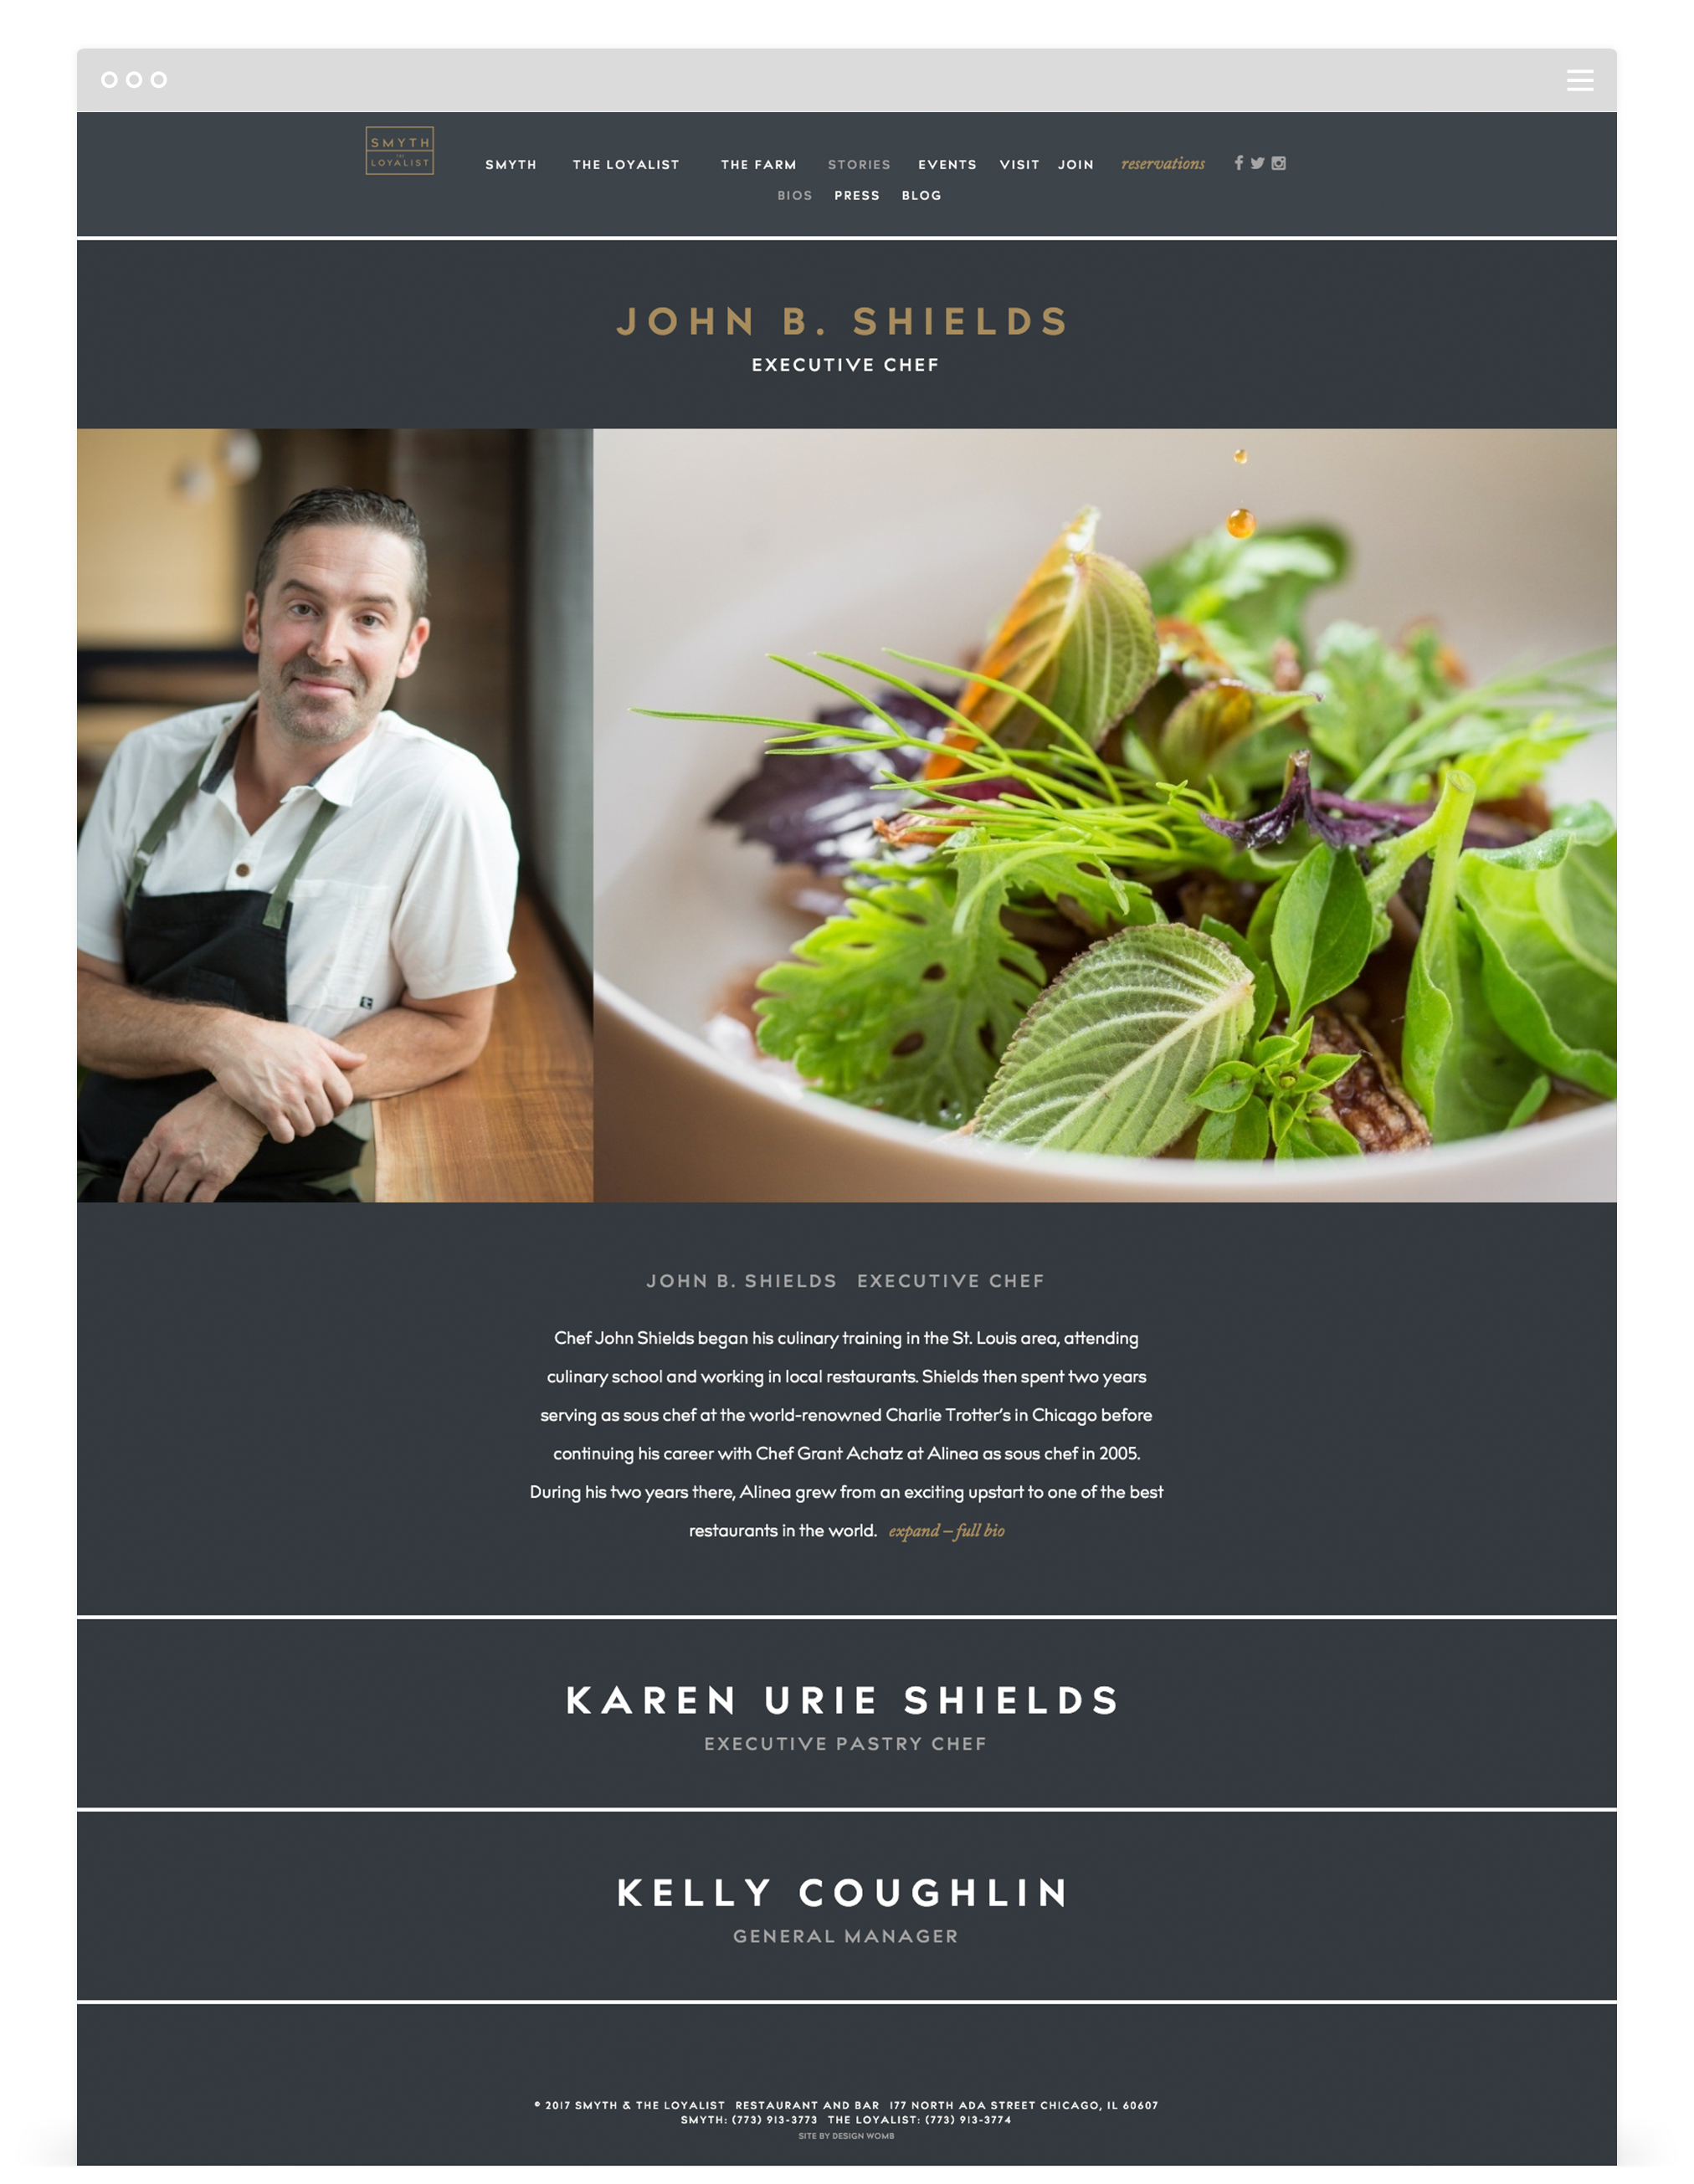 Website Development by Second + West for Smyth & The Loyalist in Chicago, IL